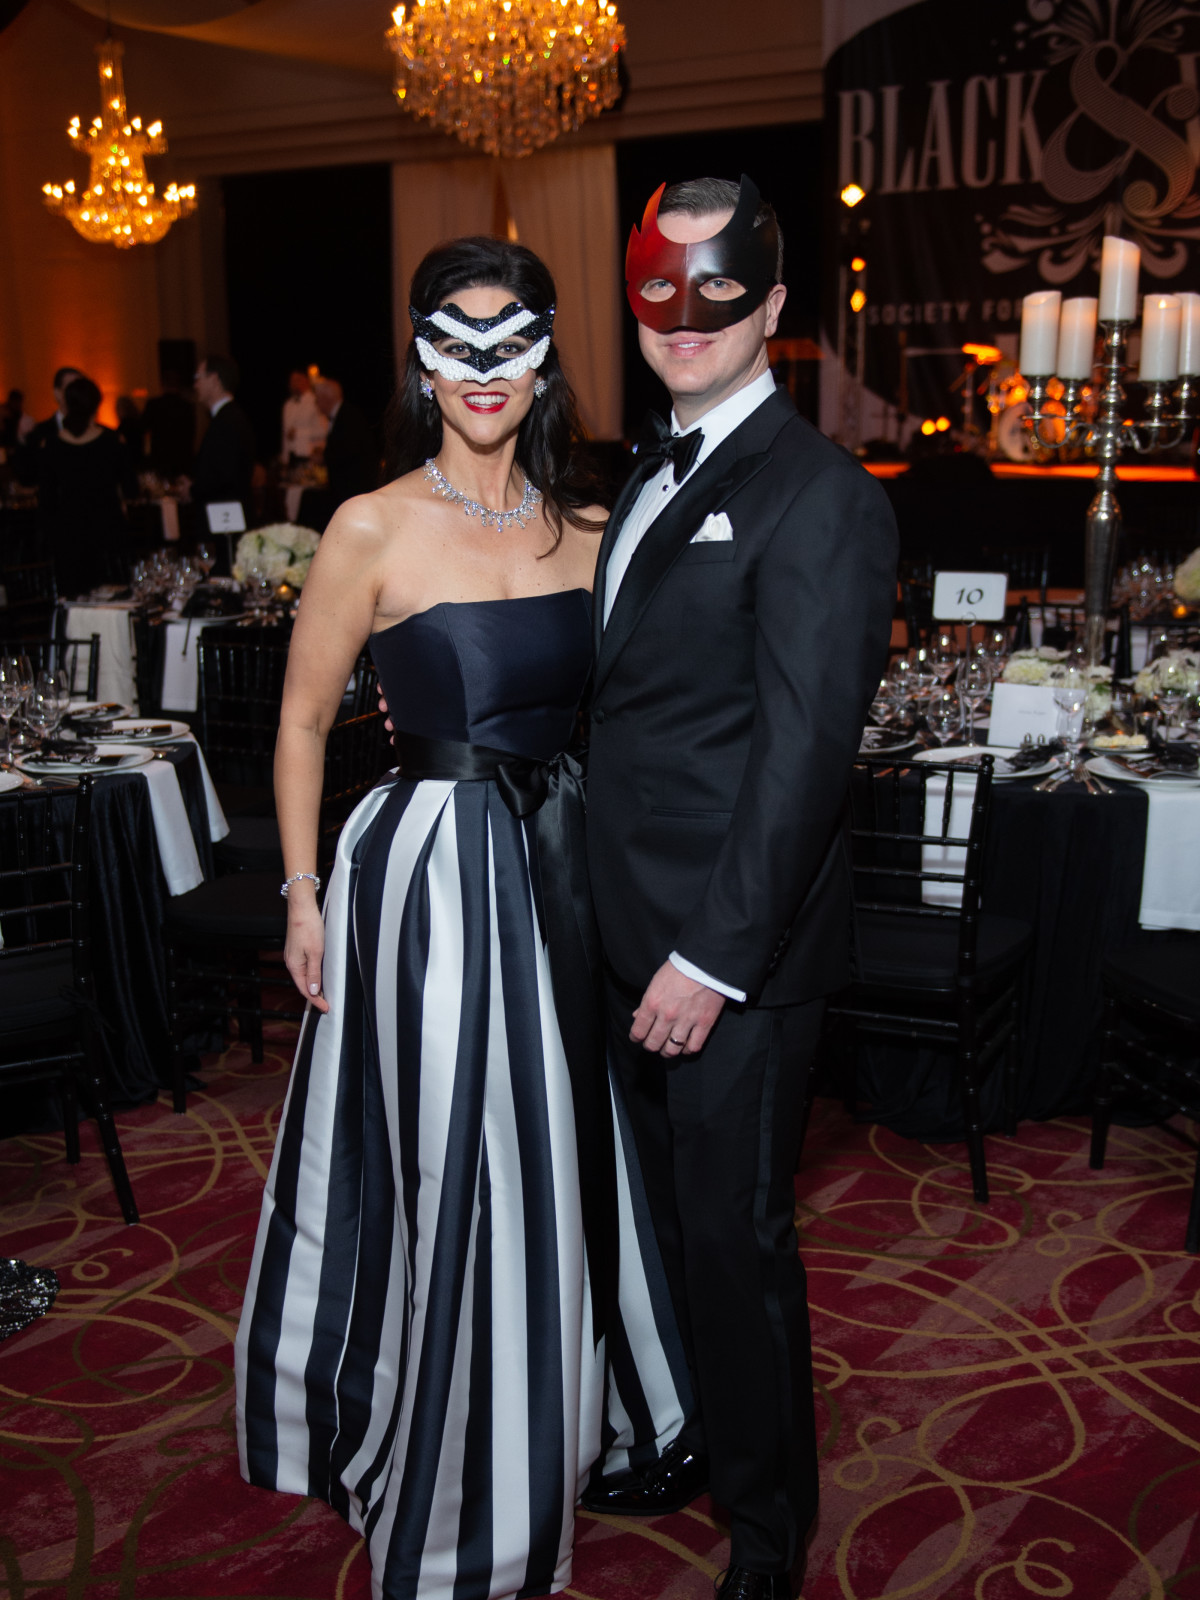 Houstonians party like Capote at red-hot Black & White Ball